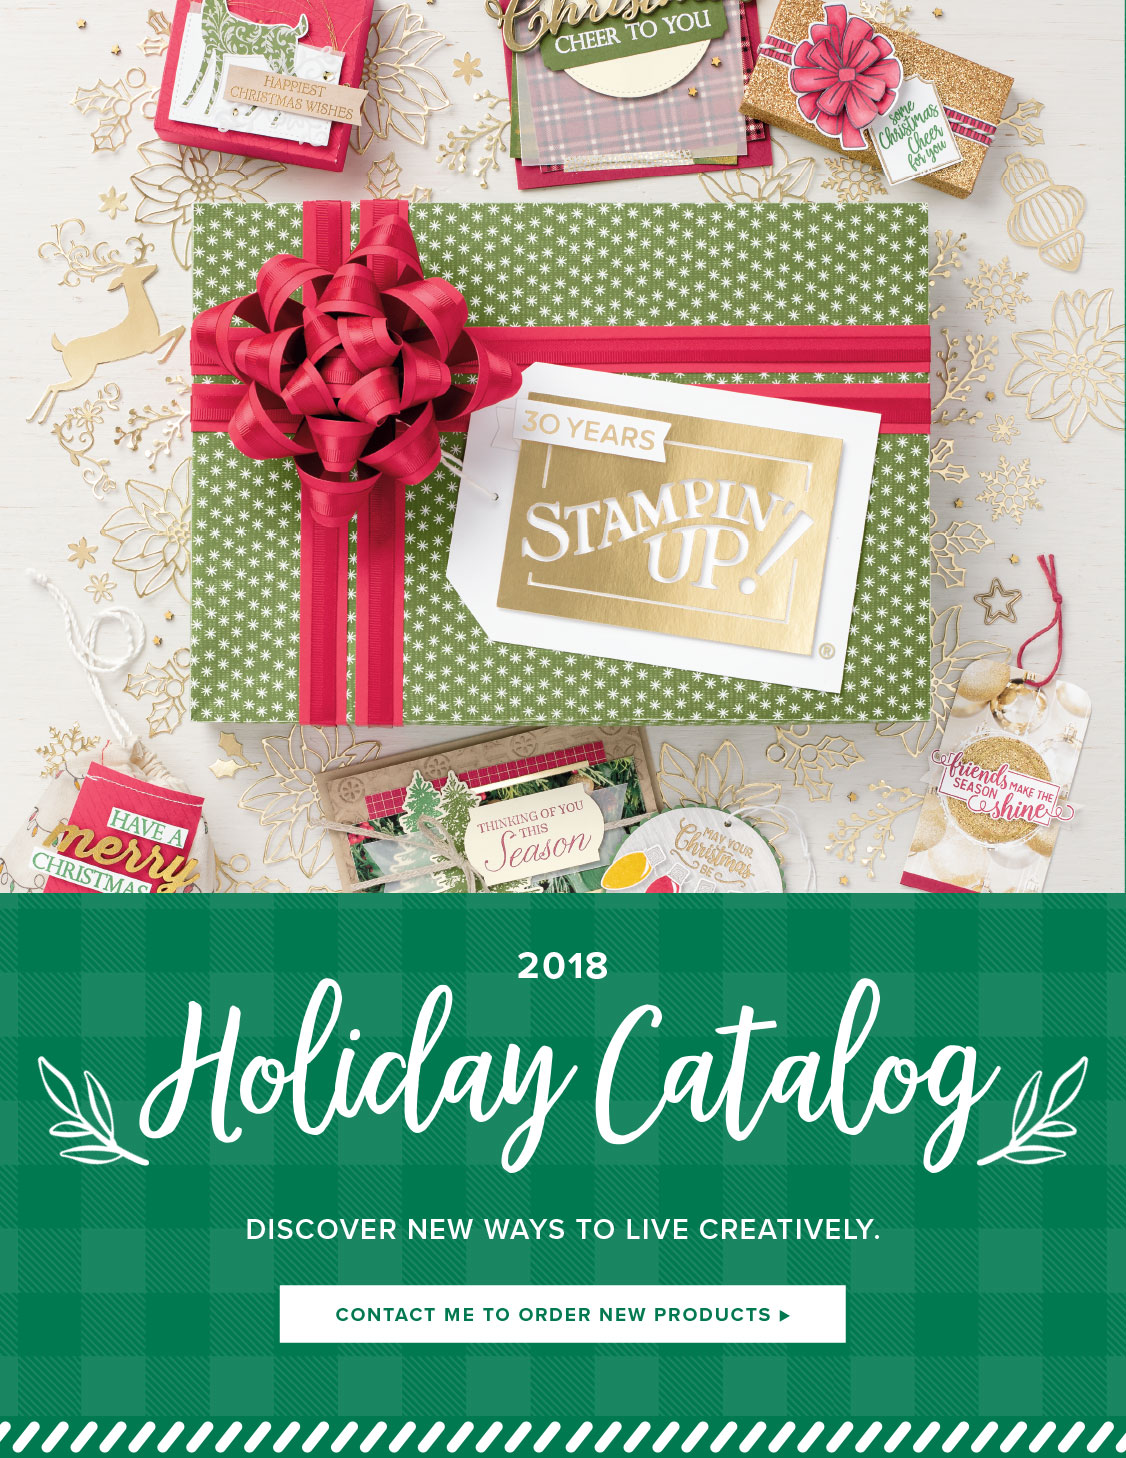 The Holiday Catalogue begins September 5th!